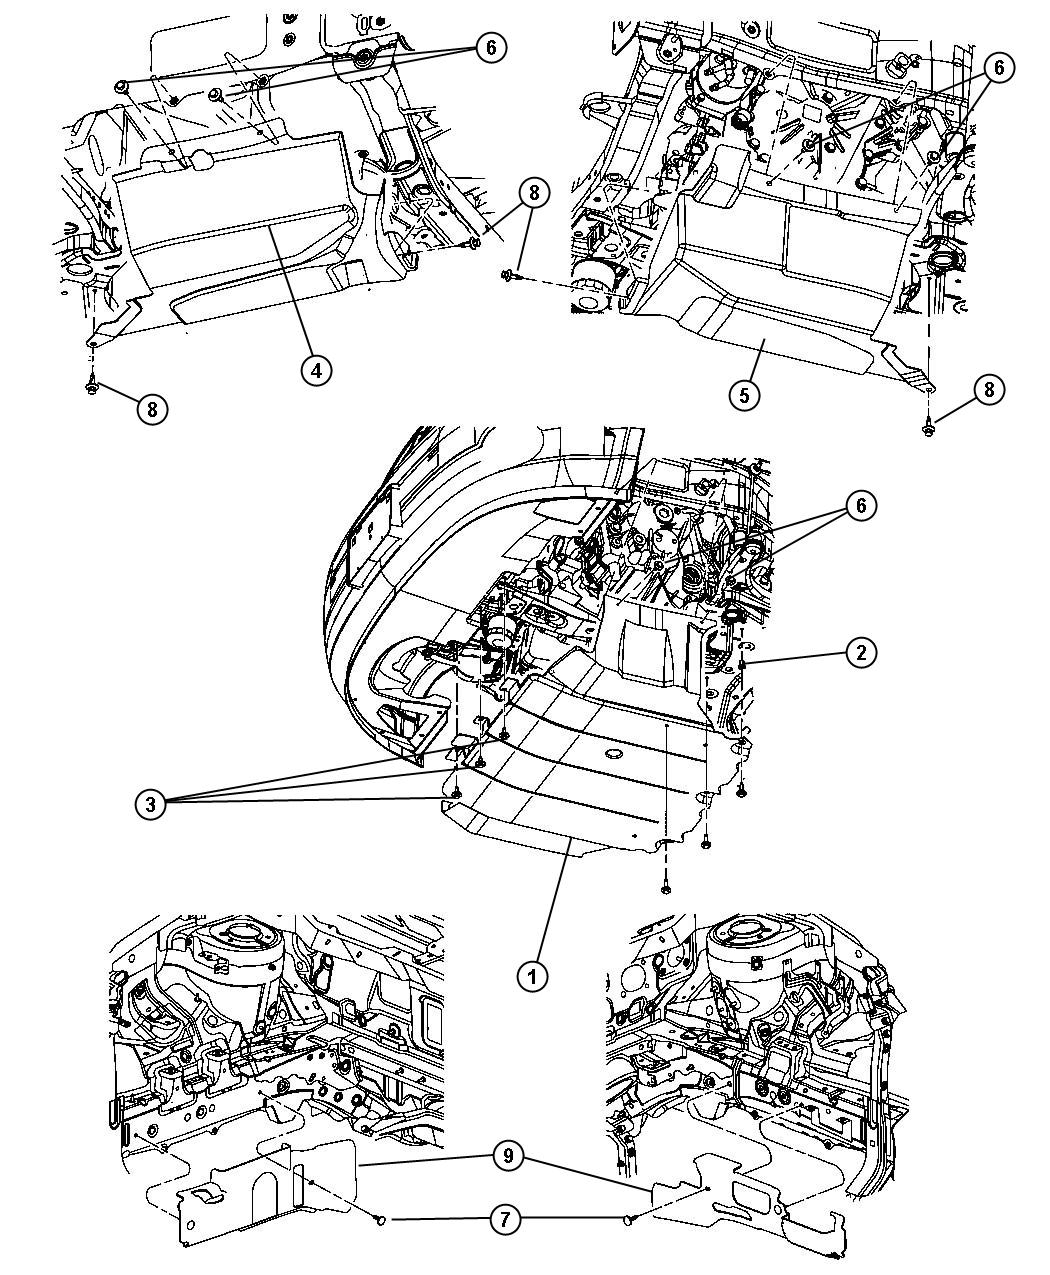 Dodge Caliber Shield Accessory Drive Trans Engine